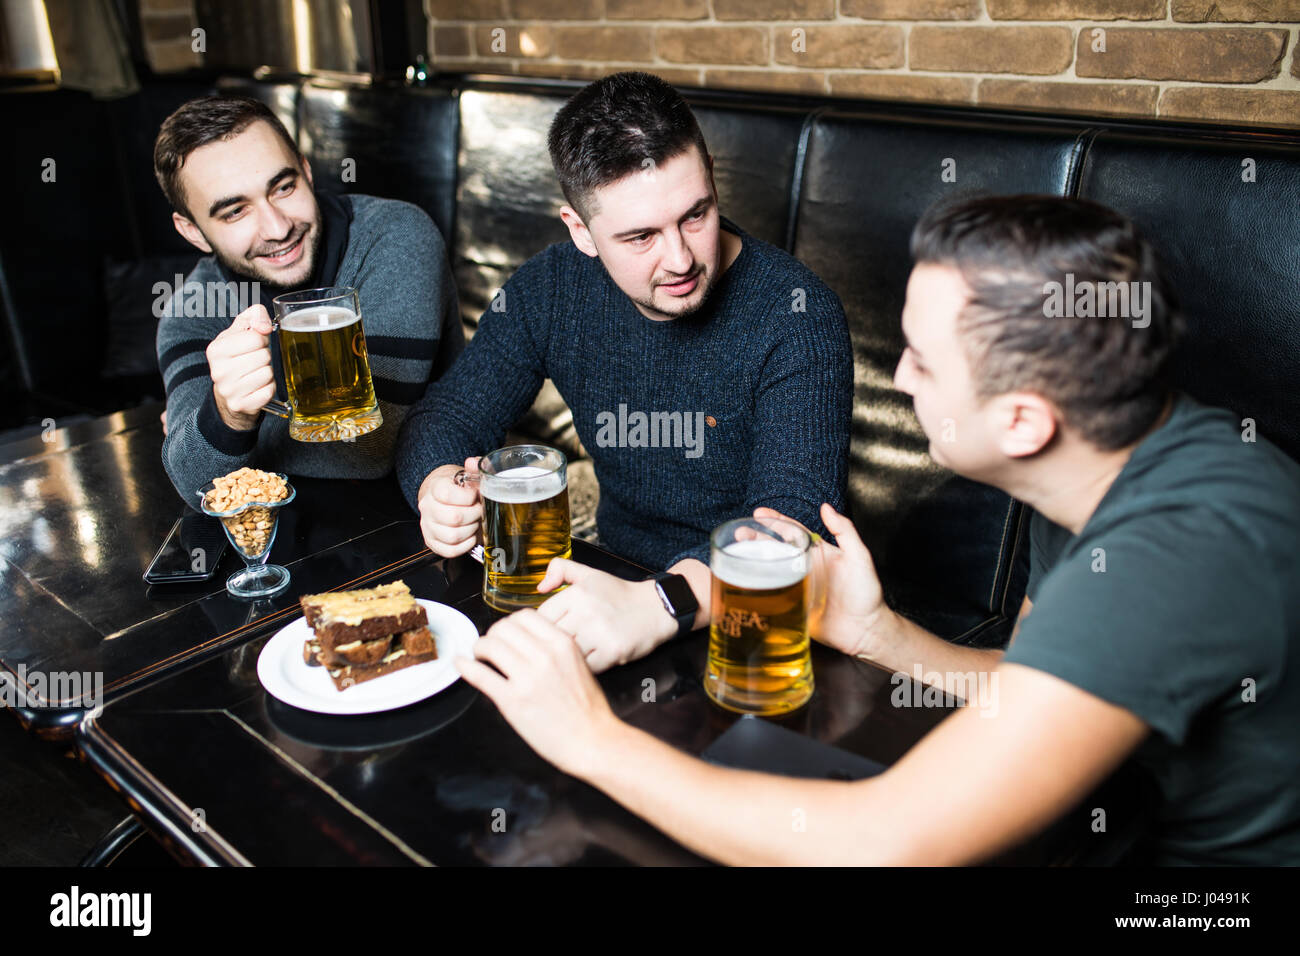 Three happy young men in casual wear talking and drinking beer while sitting in bar together - Stock Image